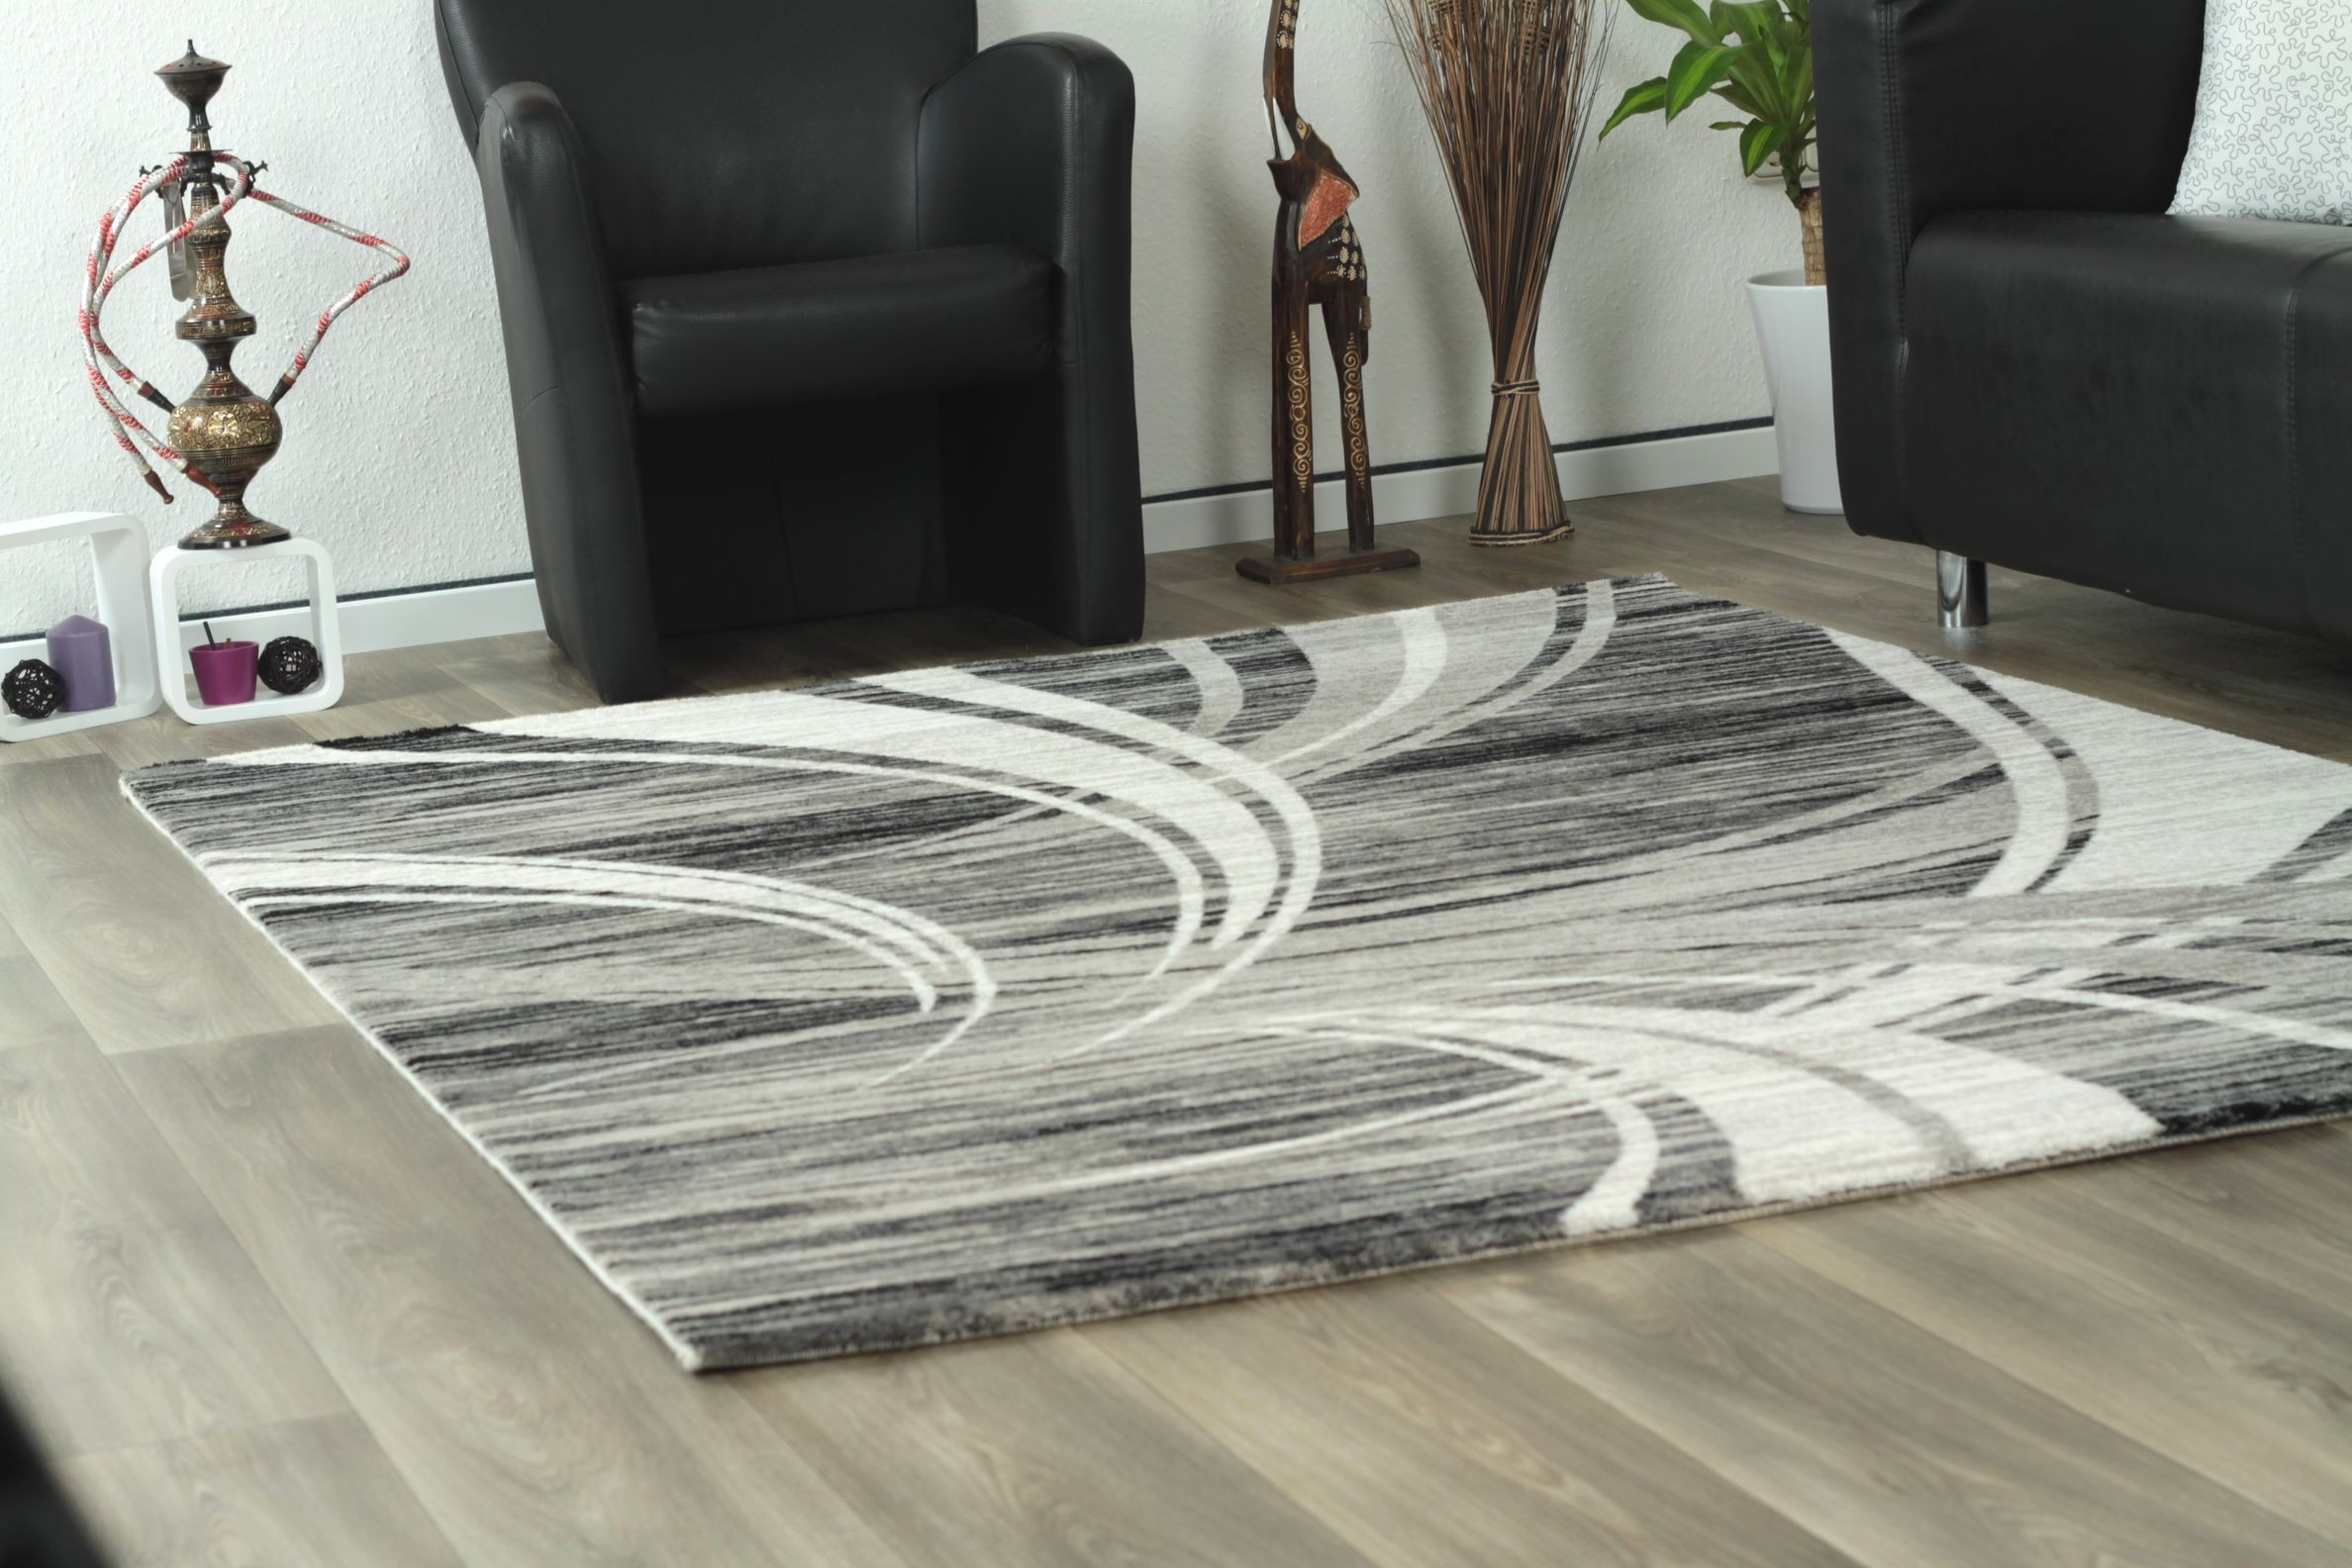 Tapis De Salon Moderne But Tapis De Salon Moderne Tapis Moderne Salon Meuble